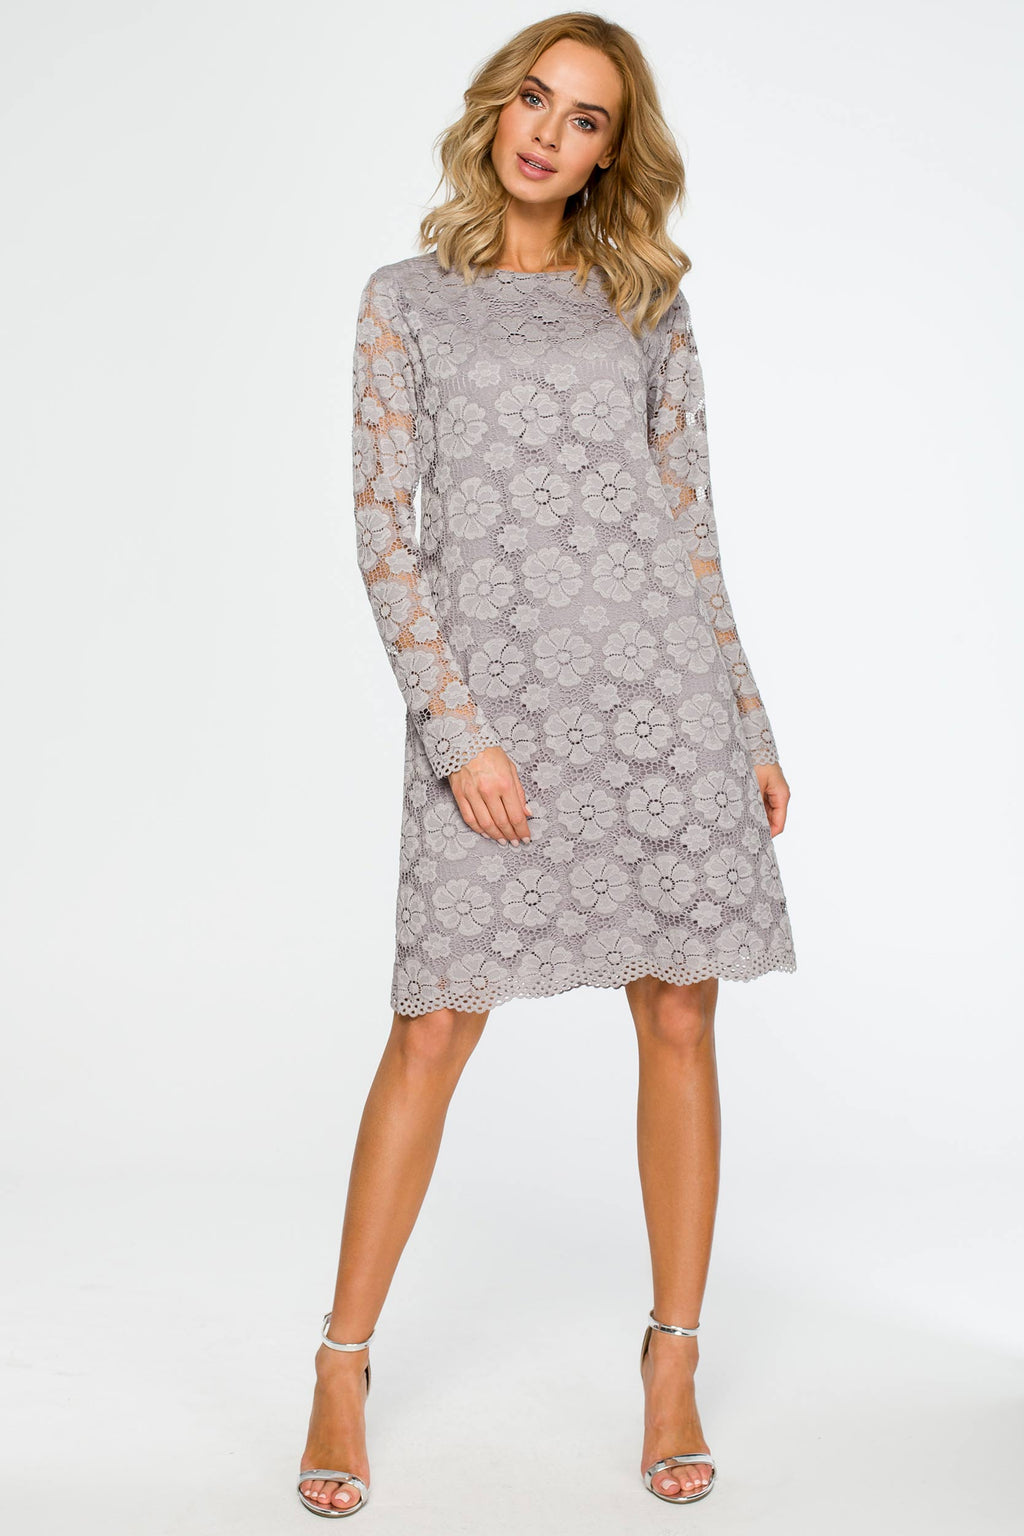 Long Sleeve Grey Lace Dress - So Chic Boutique